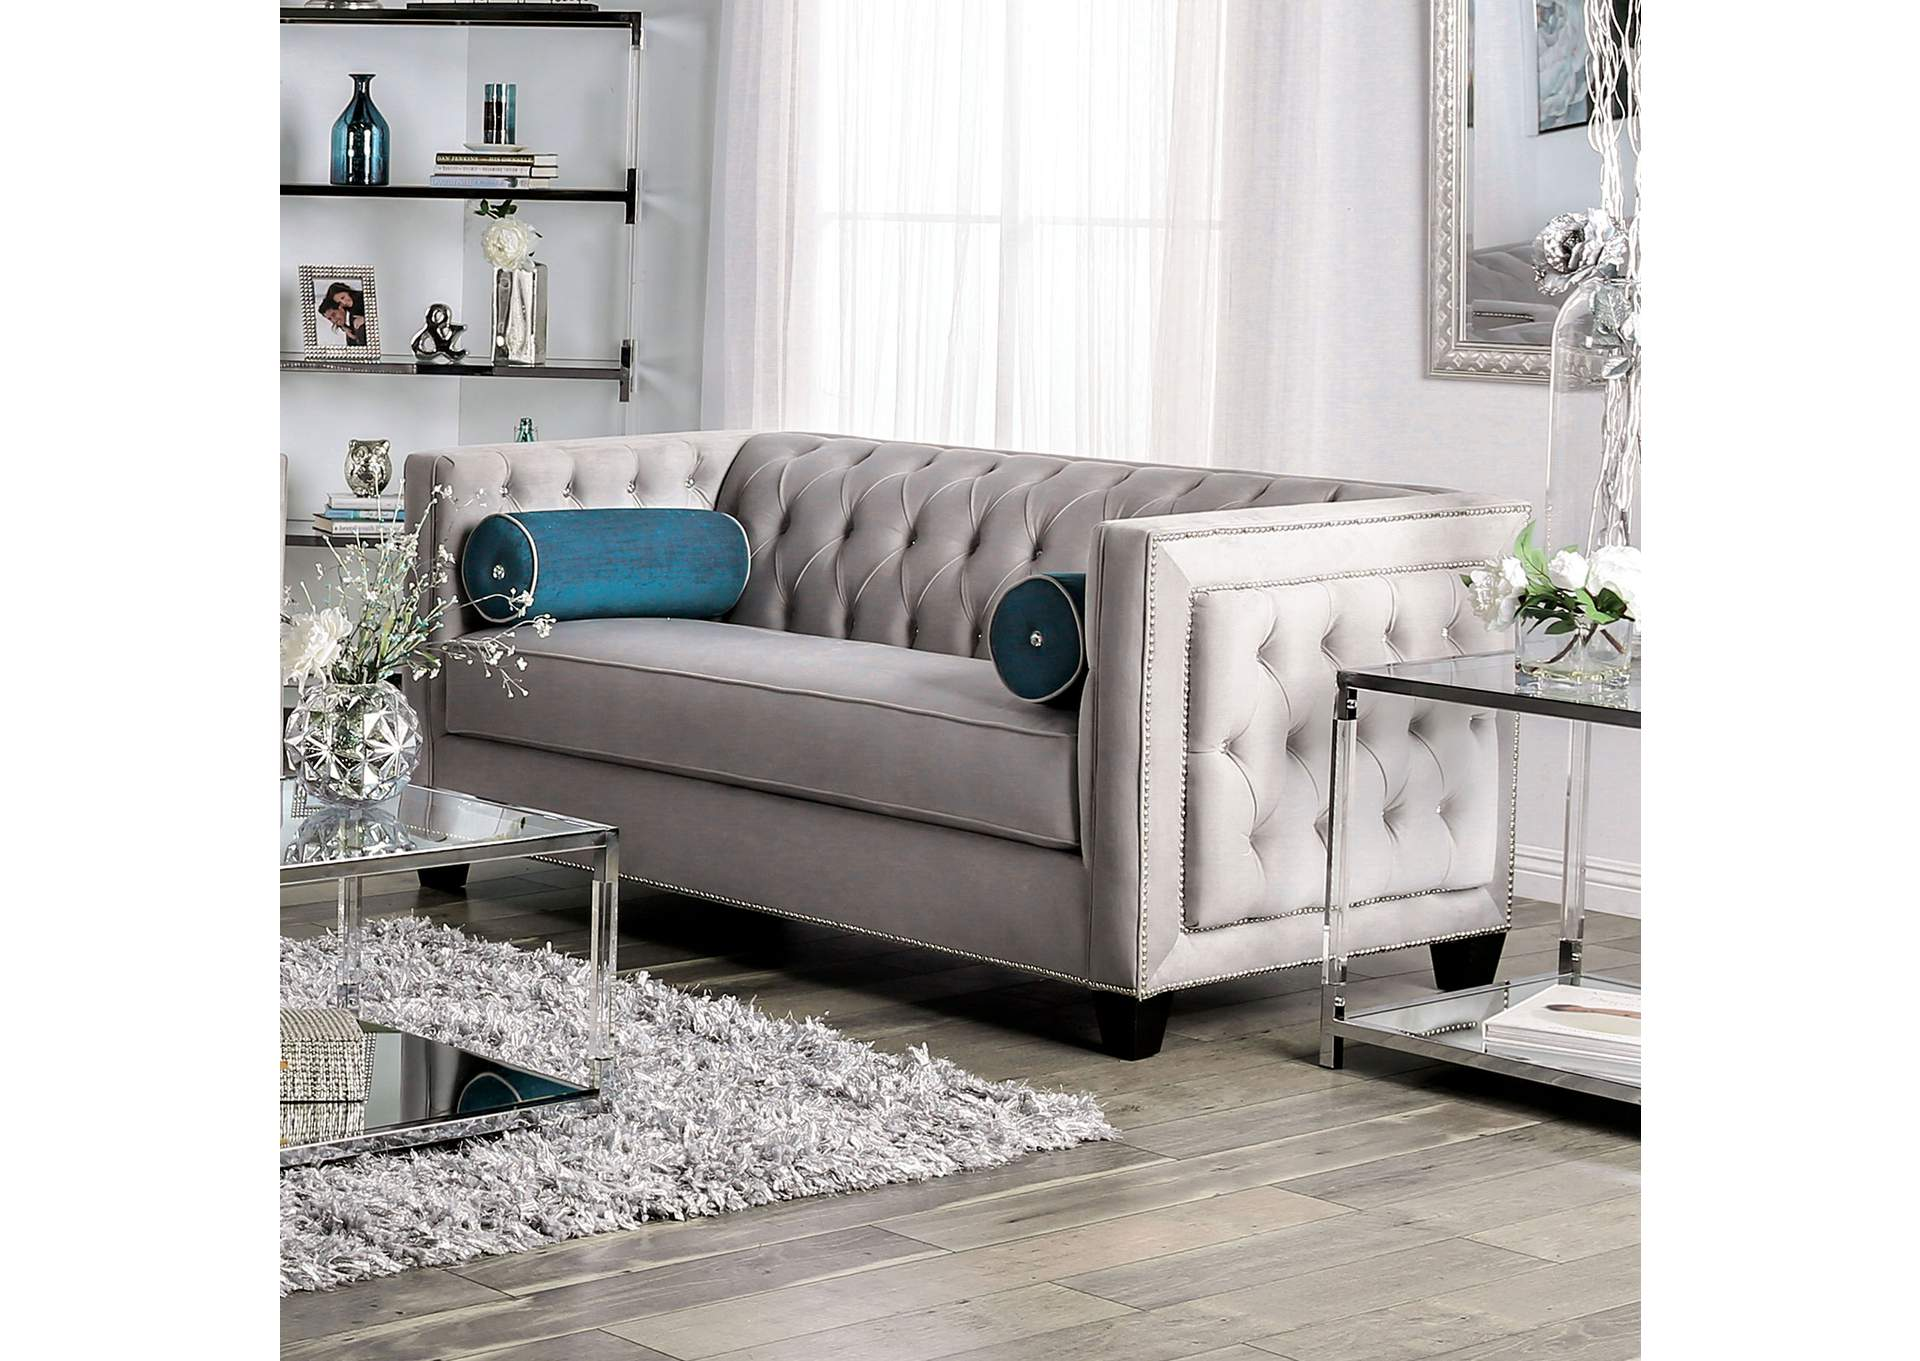 Terrific Direct Deal Furniture Silvan Gray Loveseat Gamerscity Chair Design For Home Gamerscityorg